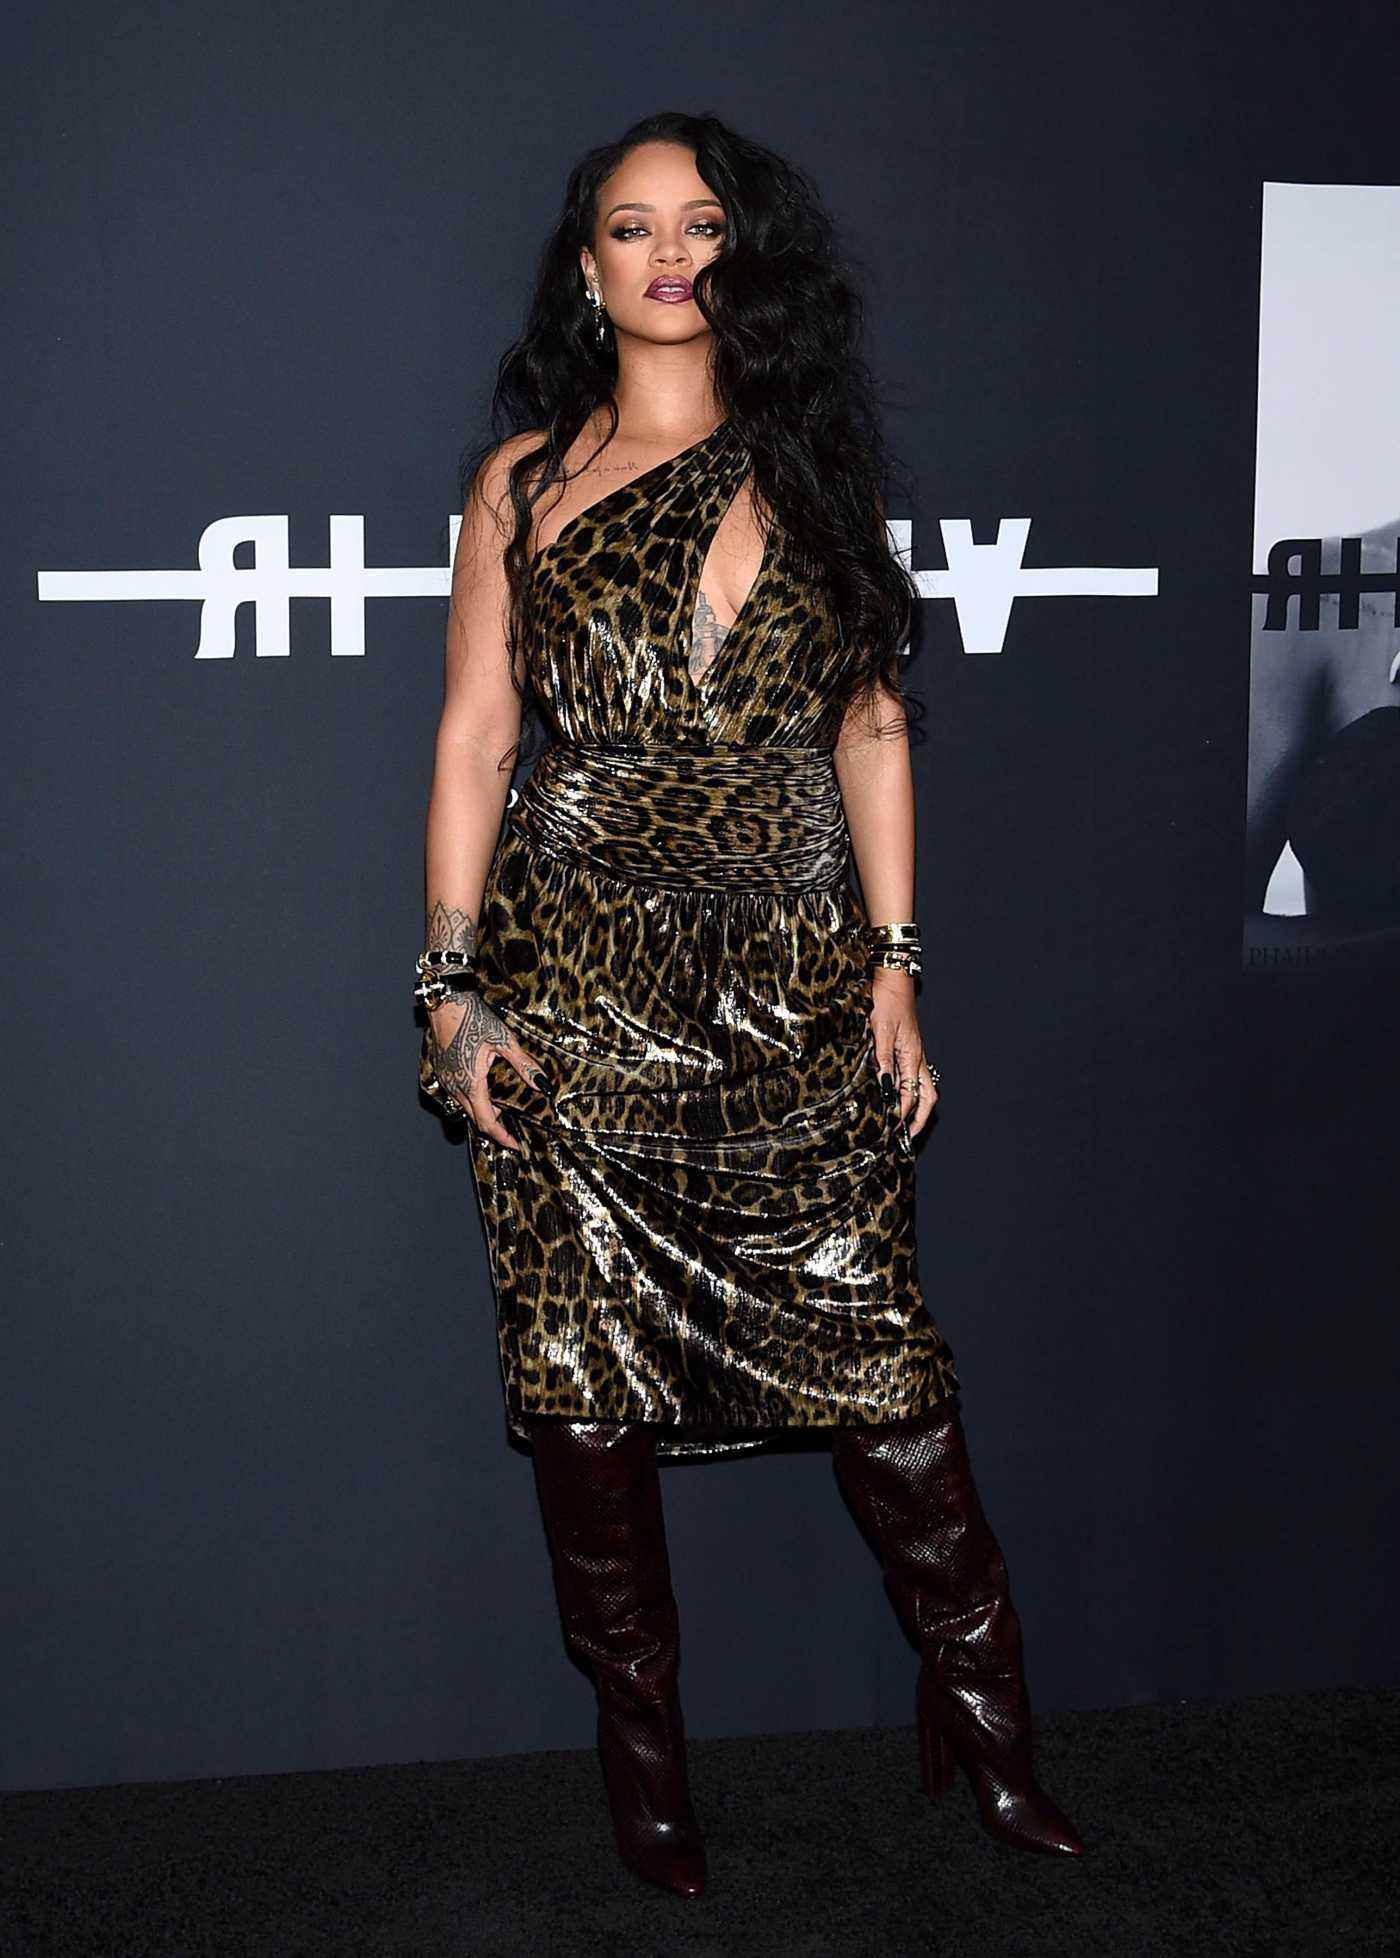 Rihanna Attends the Launch of Her First Visual Autobiography at Guggenheim Museum in New York City 10/11/2019